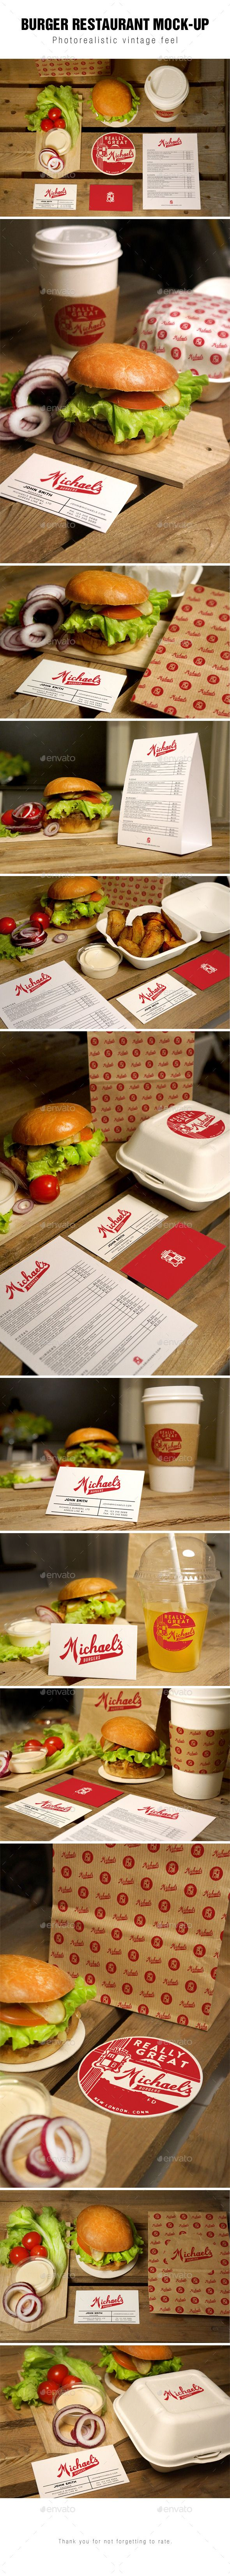 Burger Restaurant Mockup | #fastfoodmockup #burgermockup | Buy and Download: http://graphicriver.net/item/burger-restaurant-mockup/10012544?ref=ksioks